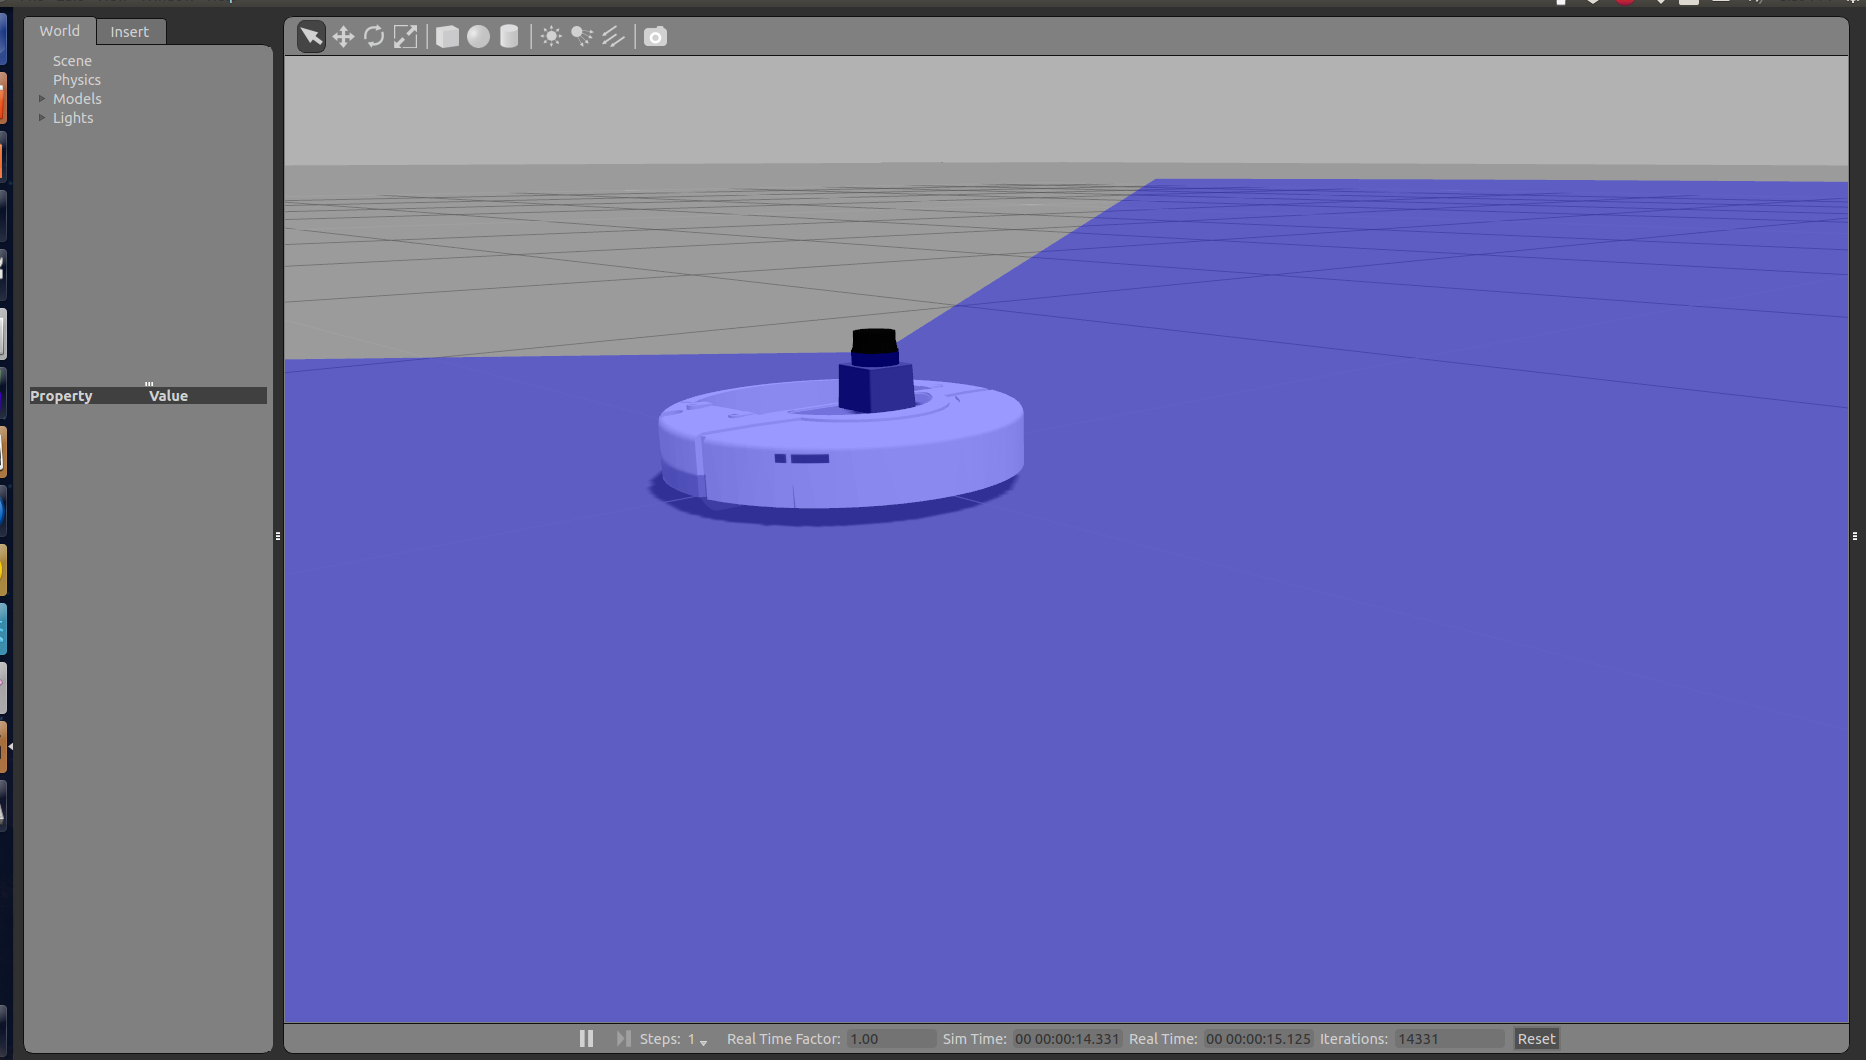 How To: Simulate Laser Scanner (Lidar) on IRobot Create